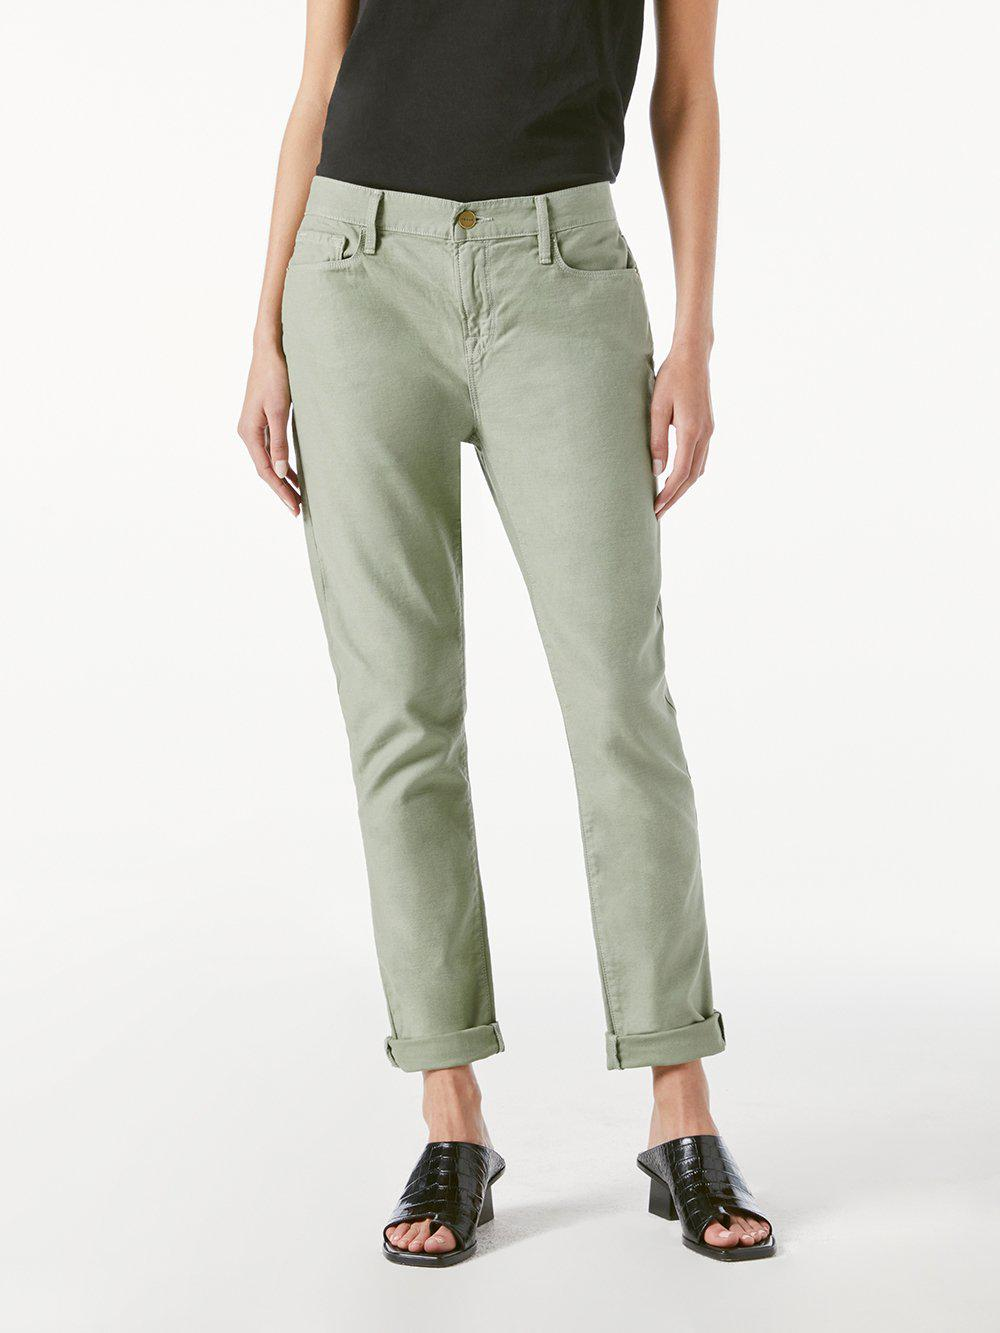 Le Garcon -- Washed Military